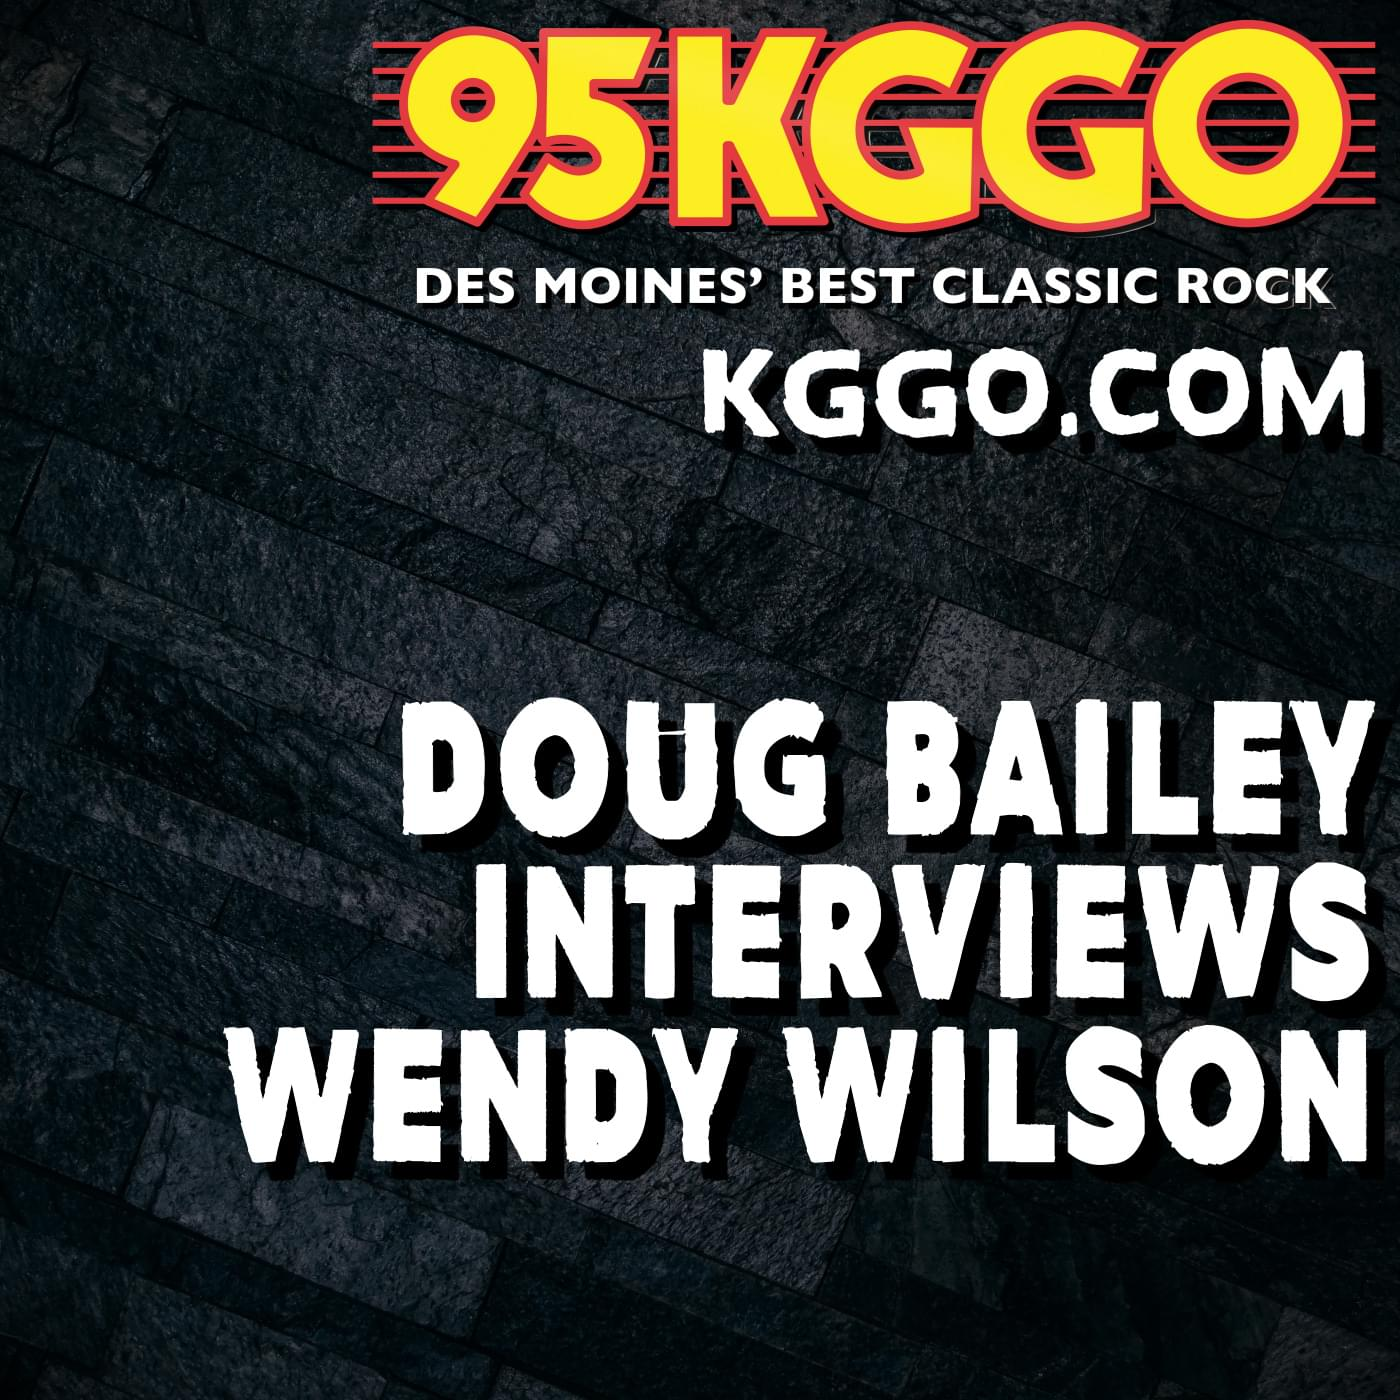 Wendy Wilson Interview